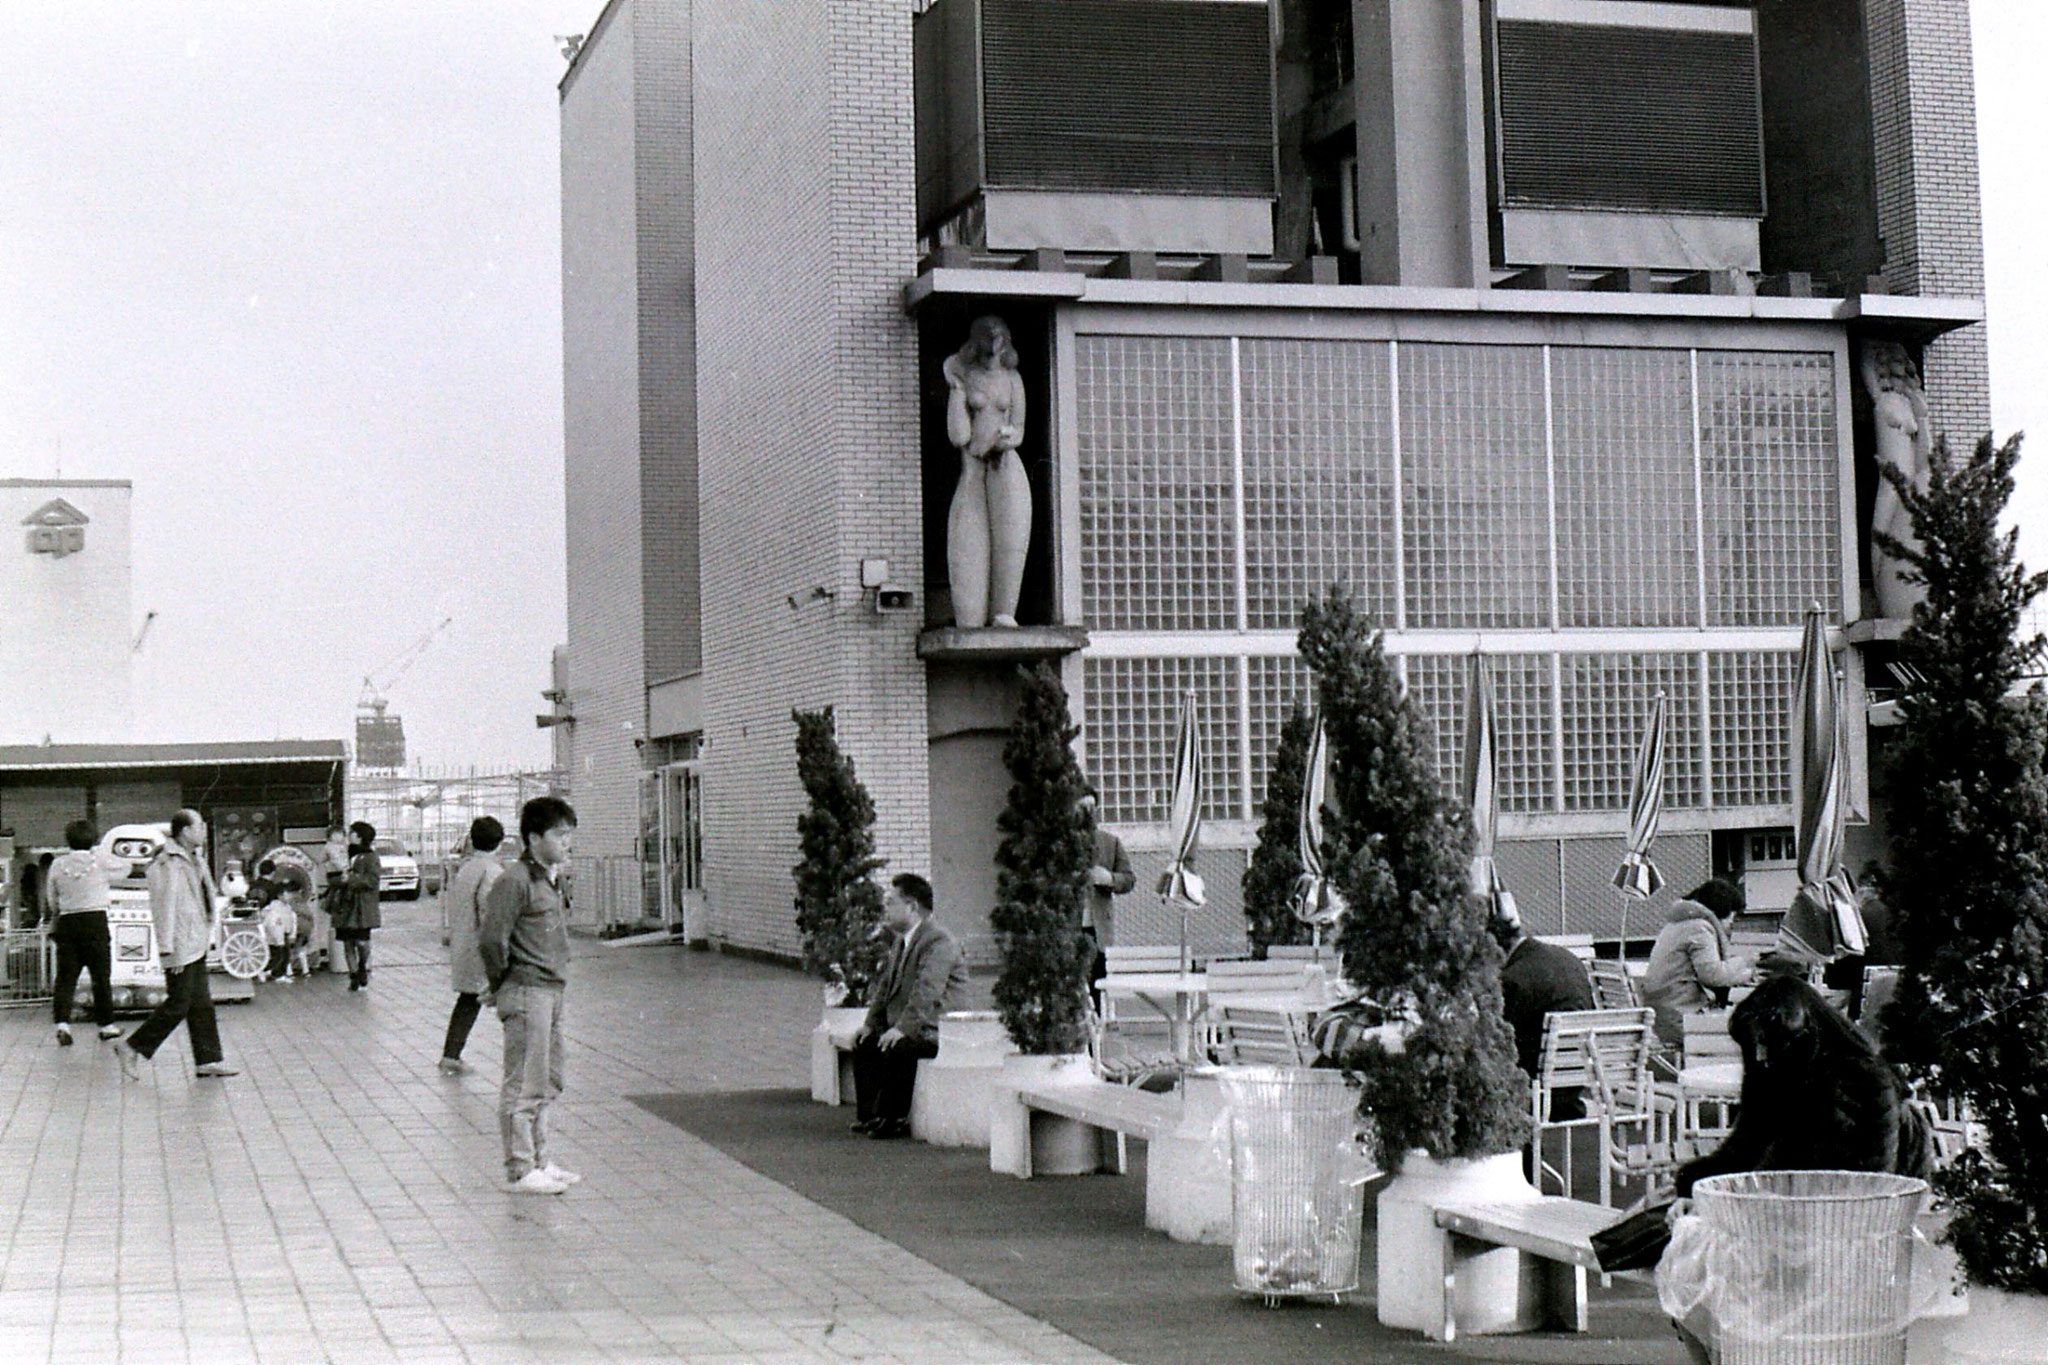 4/2/1989: 13: Takashimaya Department Store